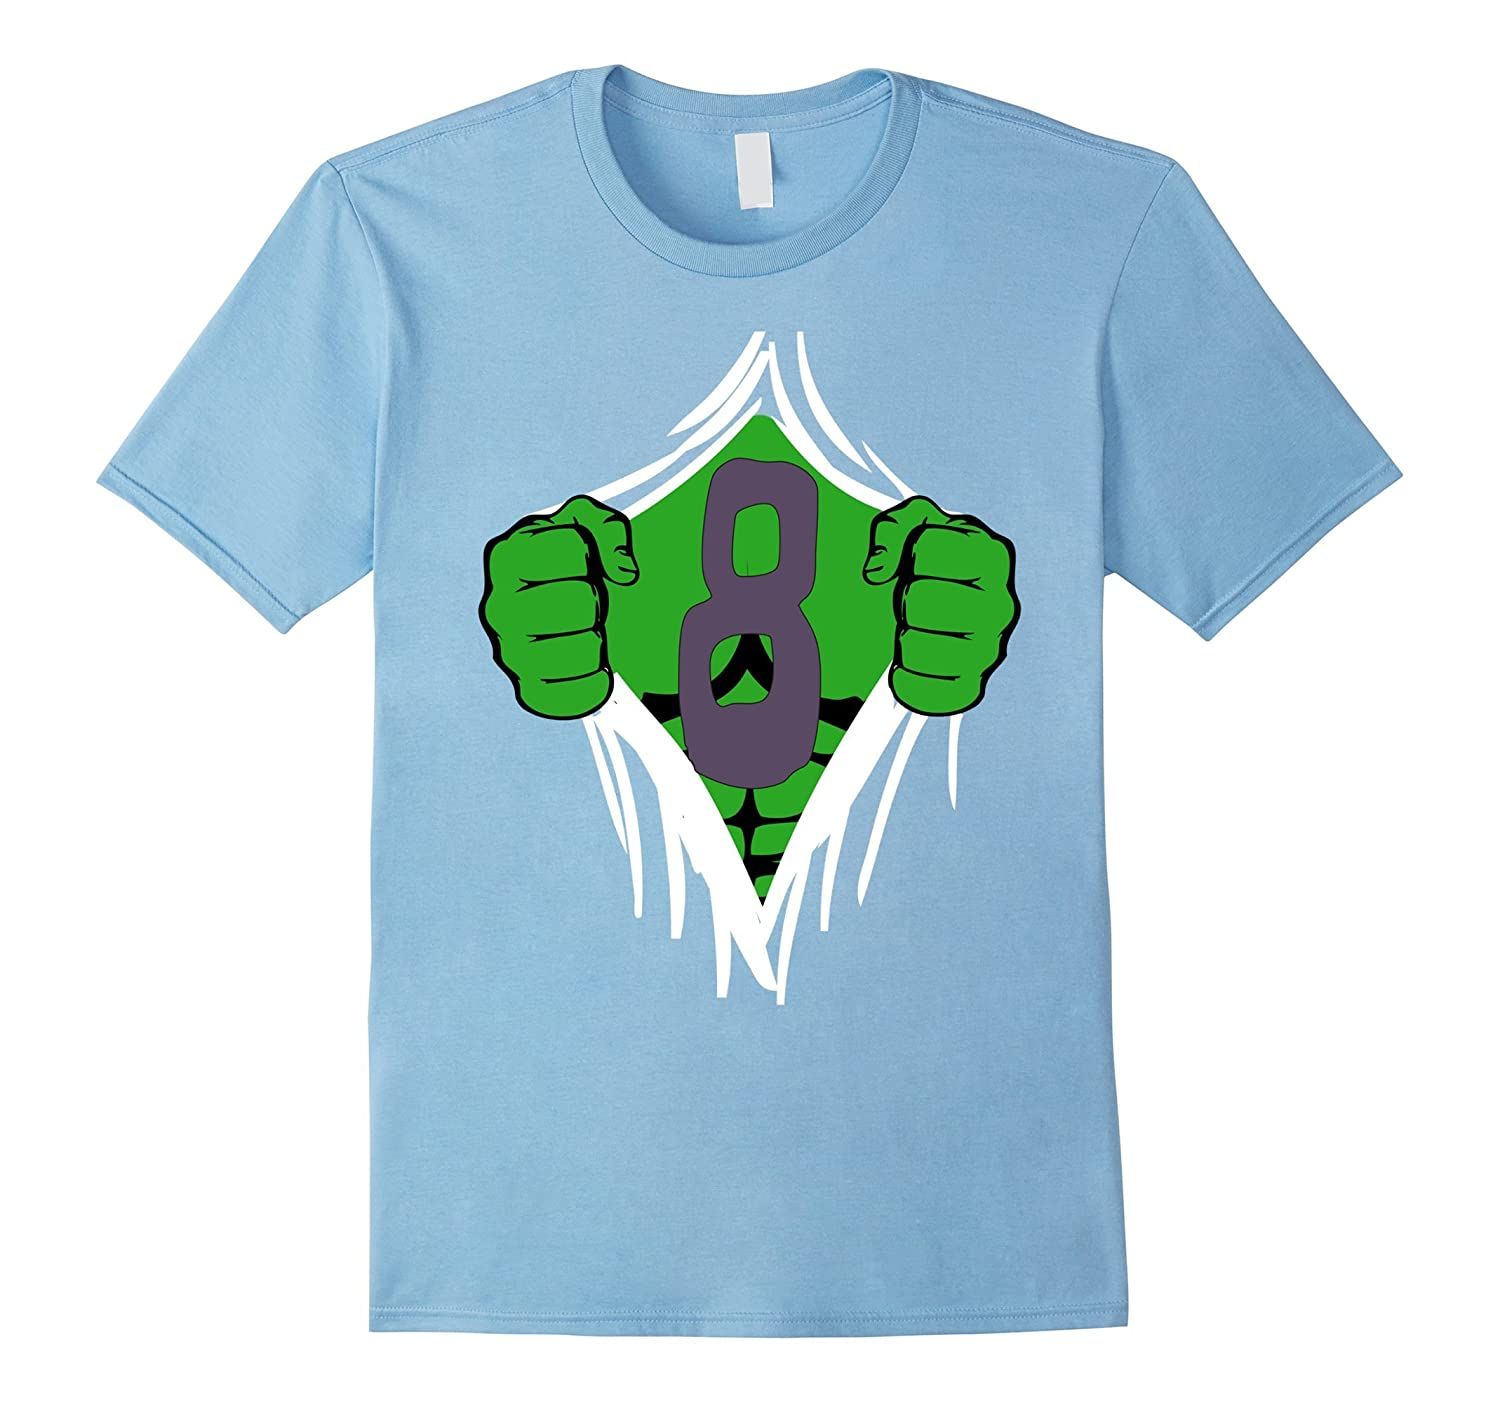 Green Man Chest Superhero Birthday Shirt For 8 Year Old Boys Vaci